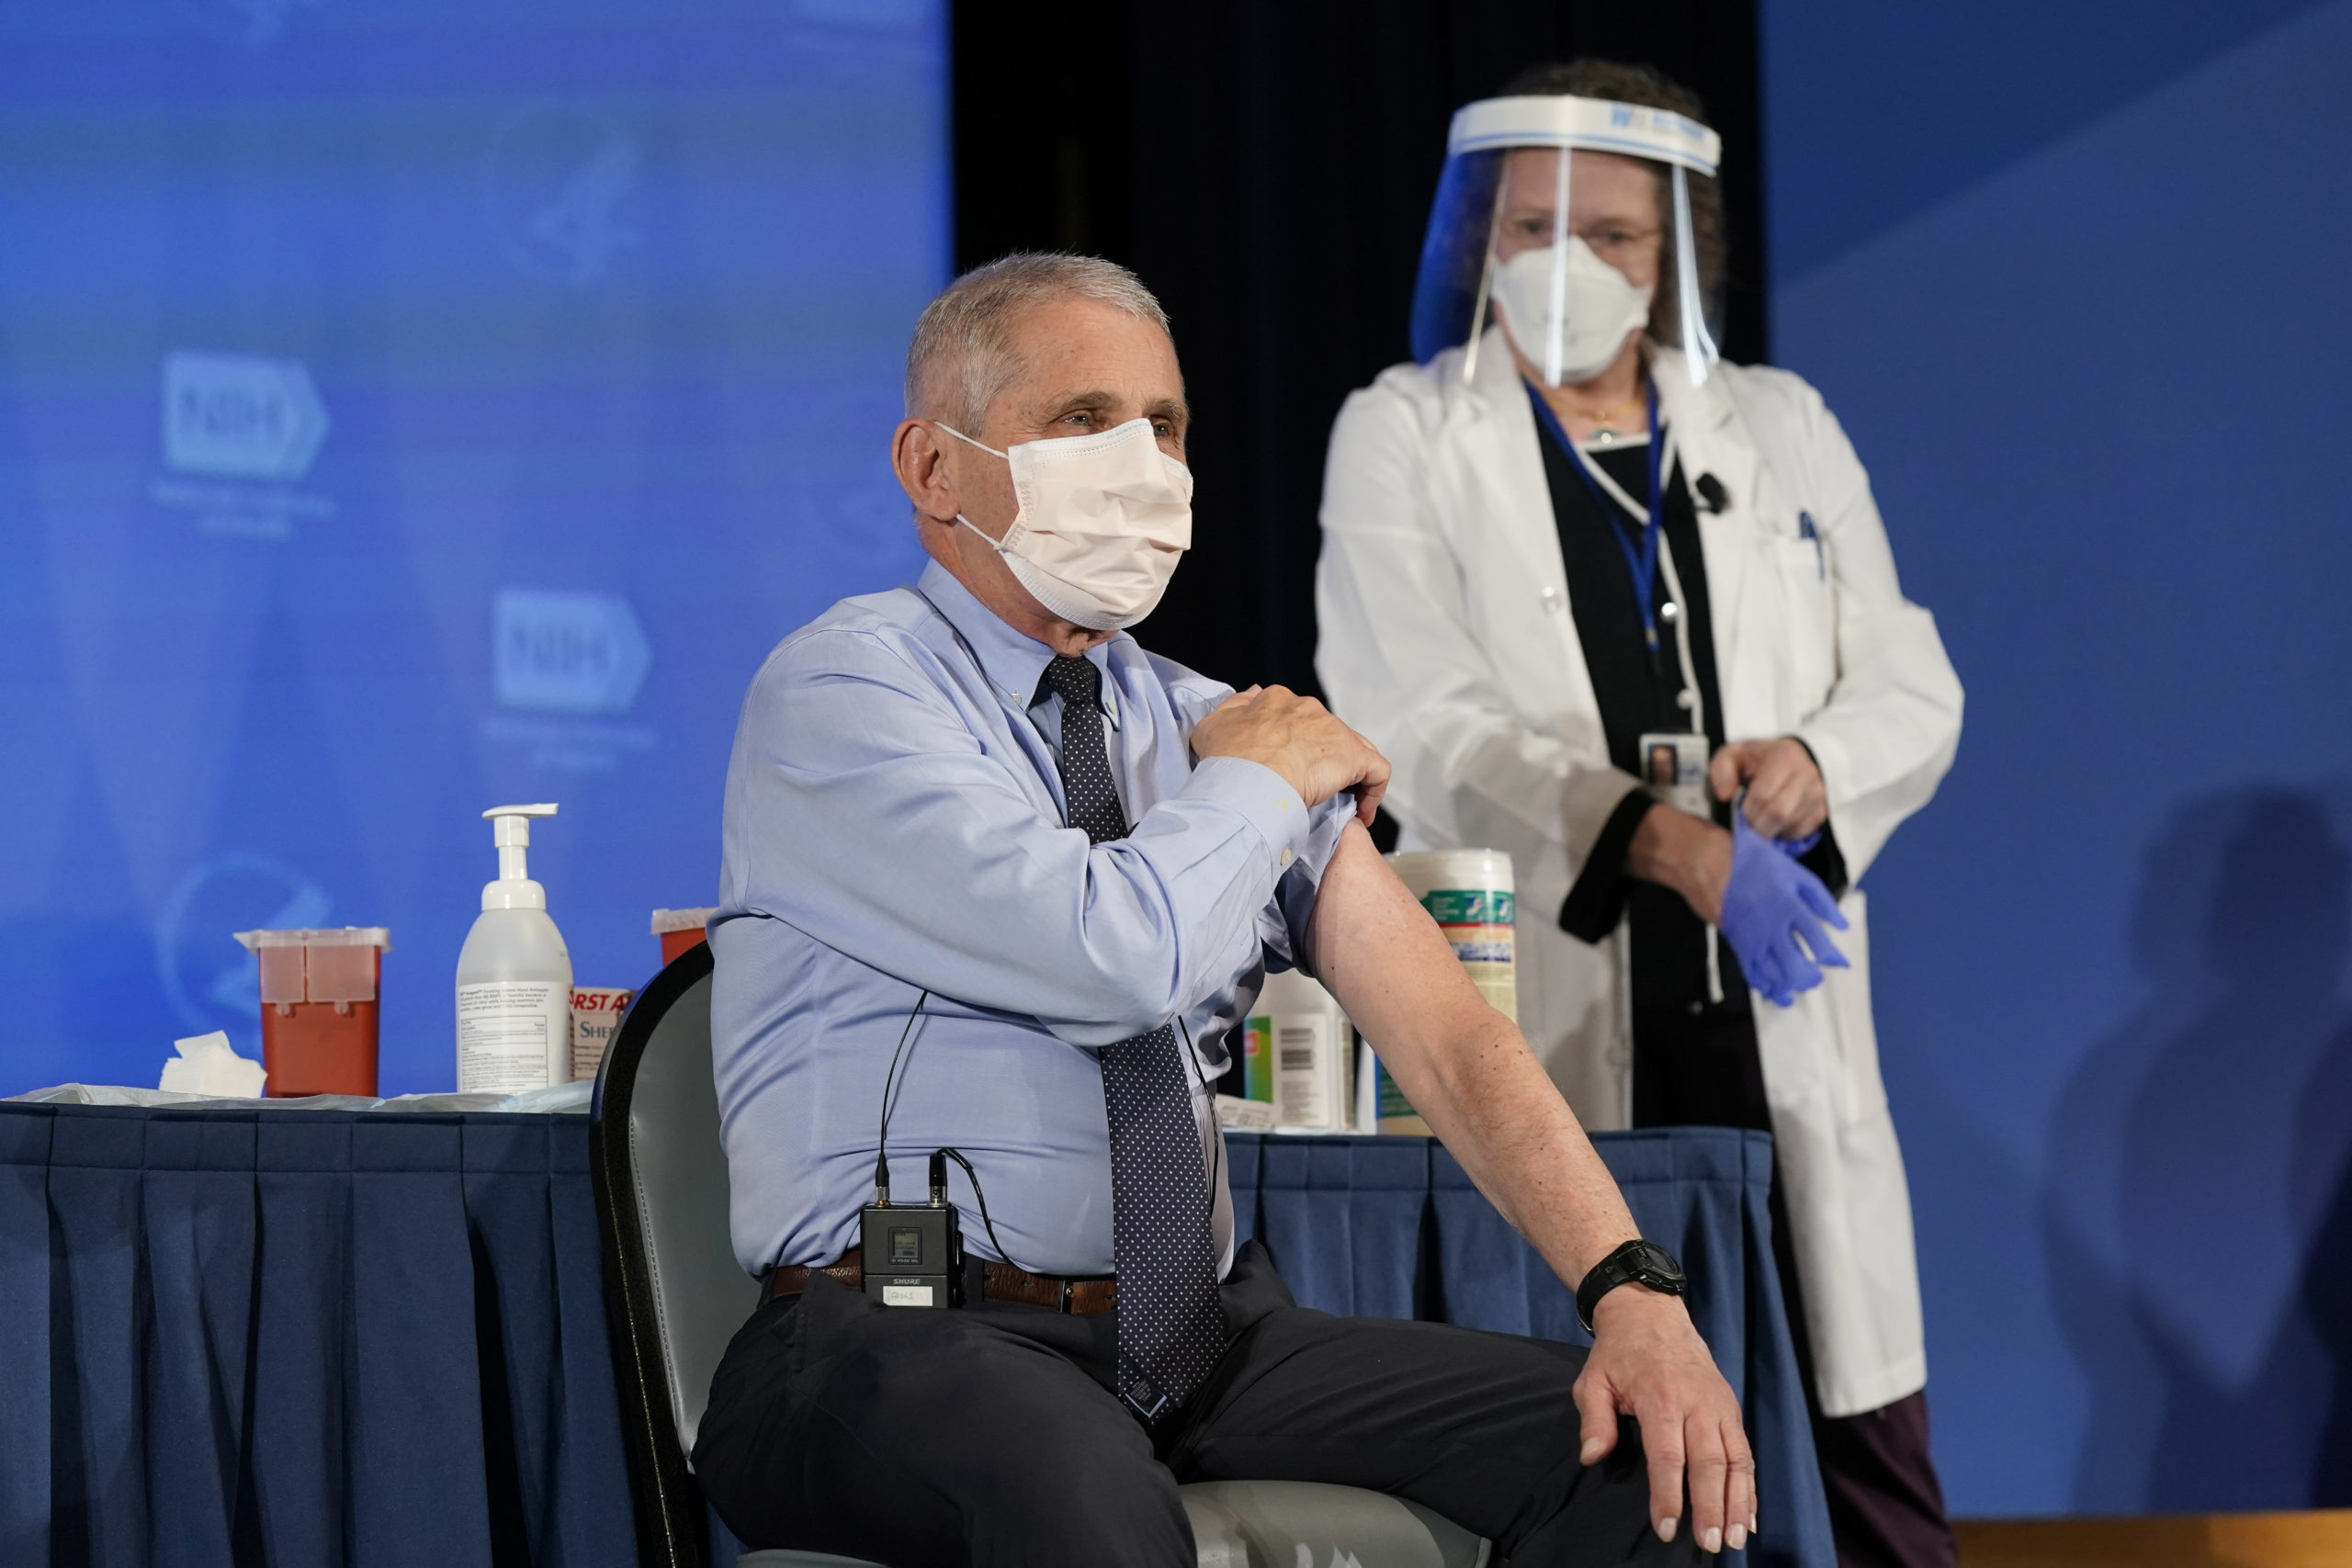 Dr. Anthony Fauci, director of the National Institute of Allergy and Infectious Diseases, rolls up his sleeve as he prepares to receive his first dose of the COVID-19 vaccine at the National Institutes of Health on December 22, 2020 in Bethesda, Maryland. (Photo by Patrick Semansky-Pool/Getty Images)